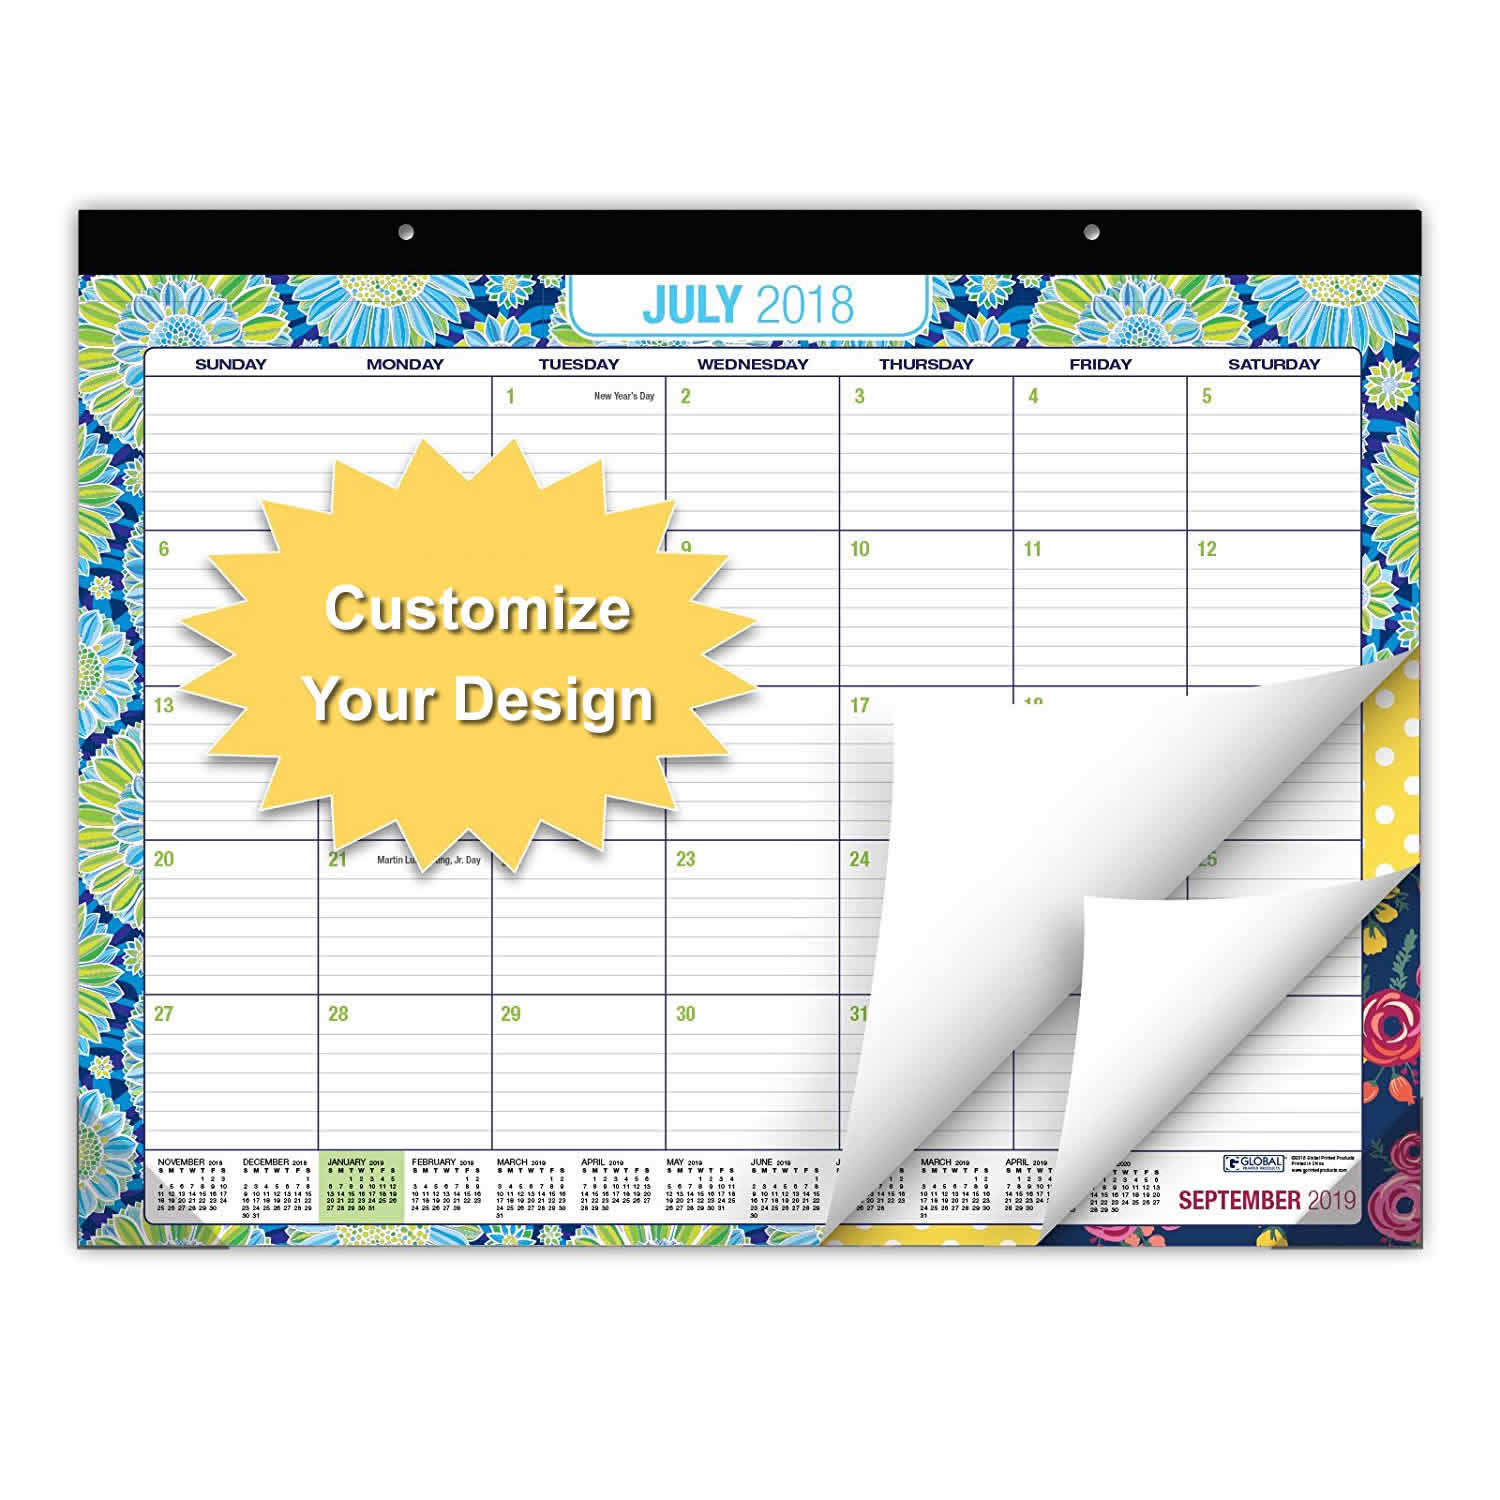 2020 new arrivals snap on personalised planner calendar models custom printing page a day calendar whiteboard manufacturer